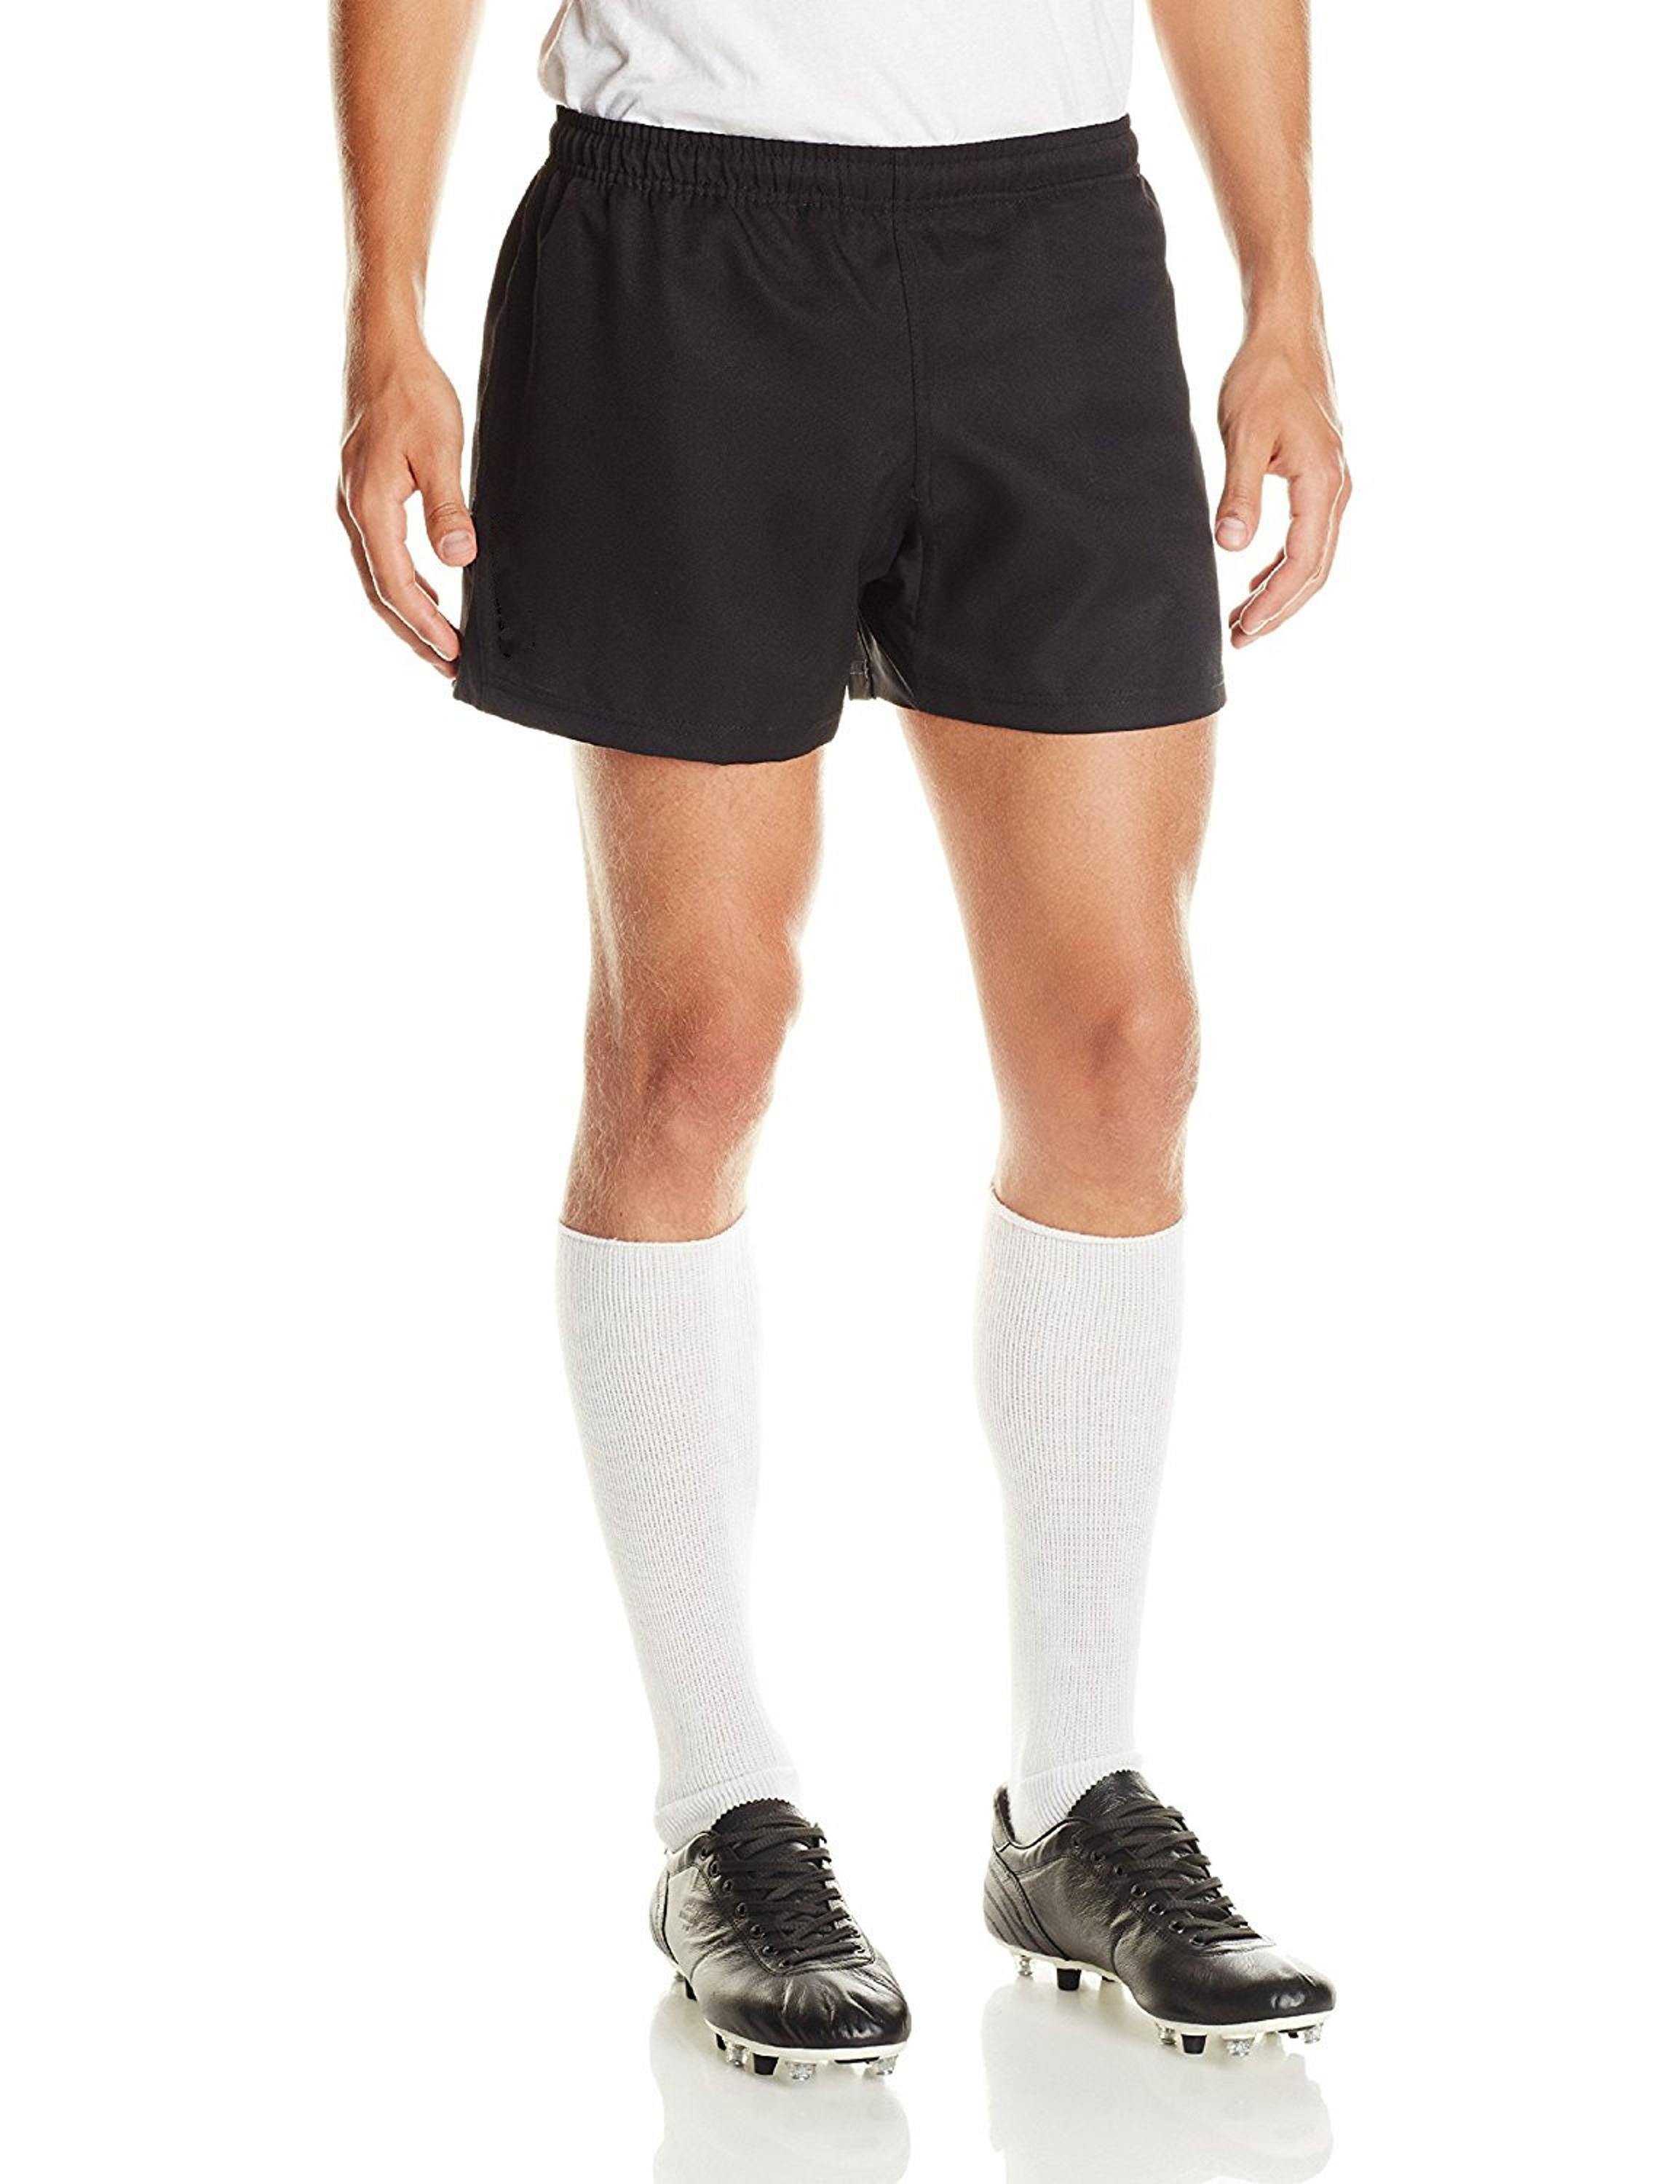 rugby shorts wholesale (2).jpg